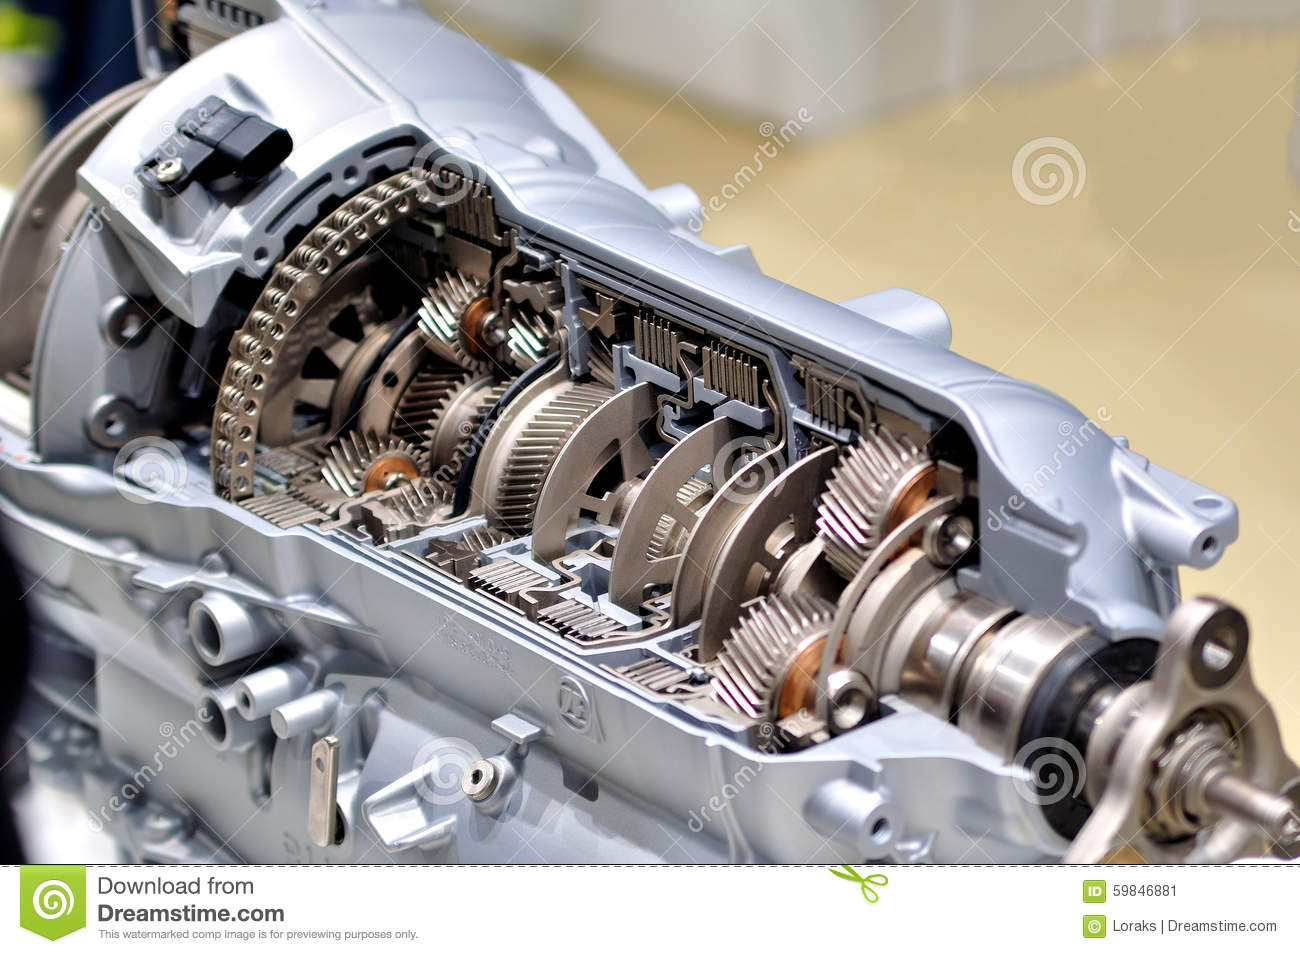 Car transmission  stock image  Image of auto, gearbox - 59846881